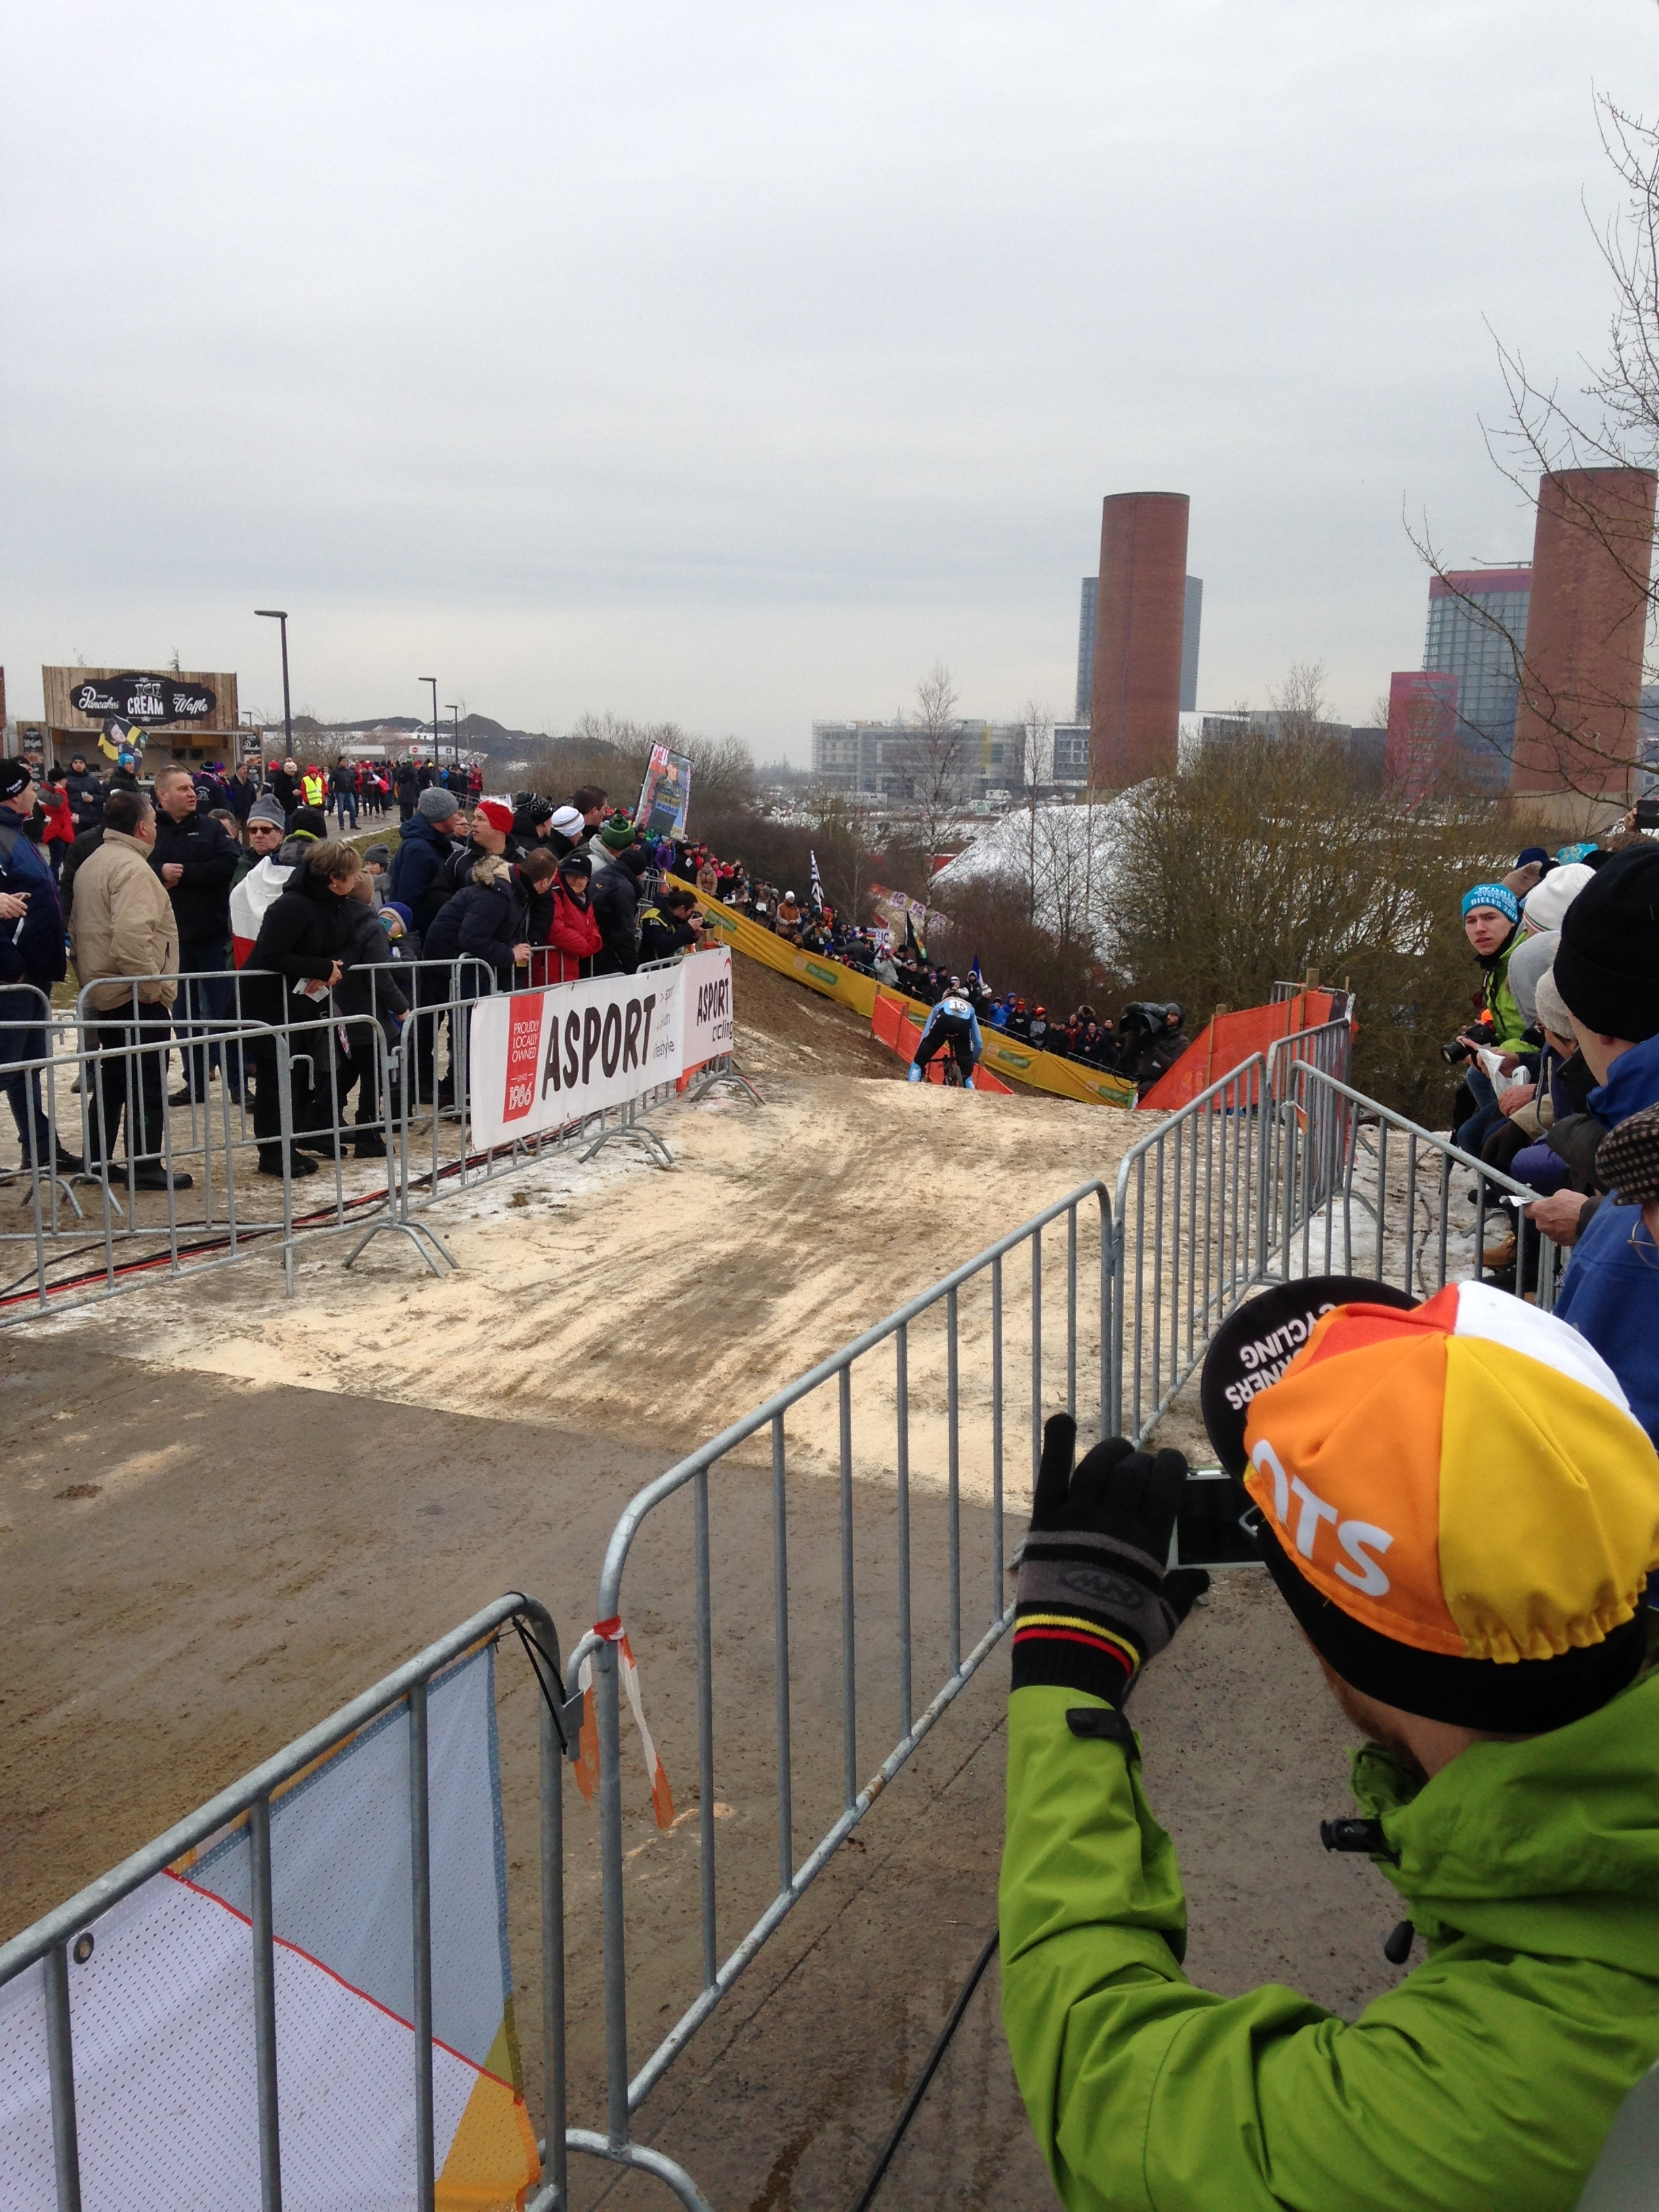 CJG - JP at Bieles CX Worlds